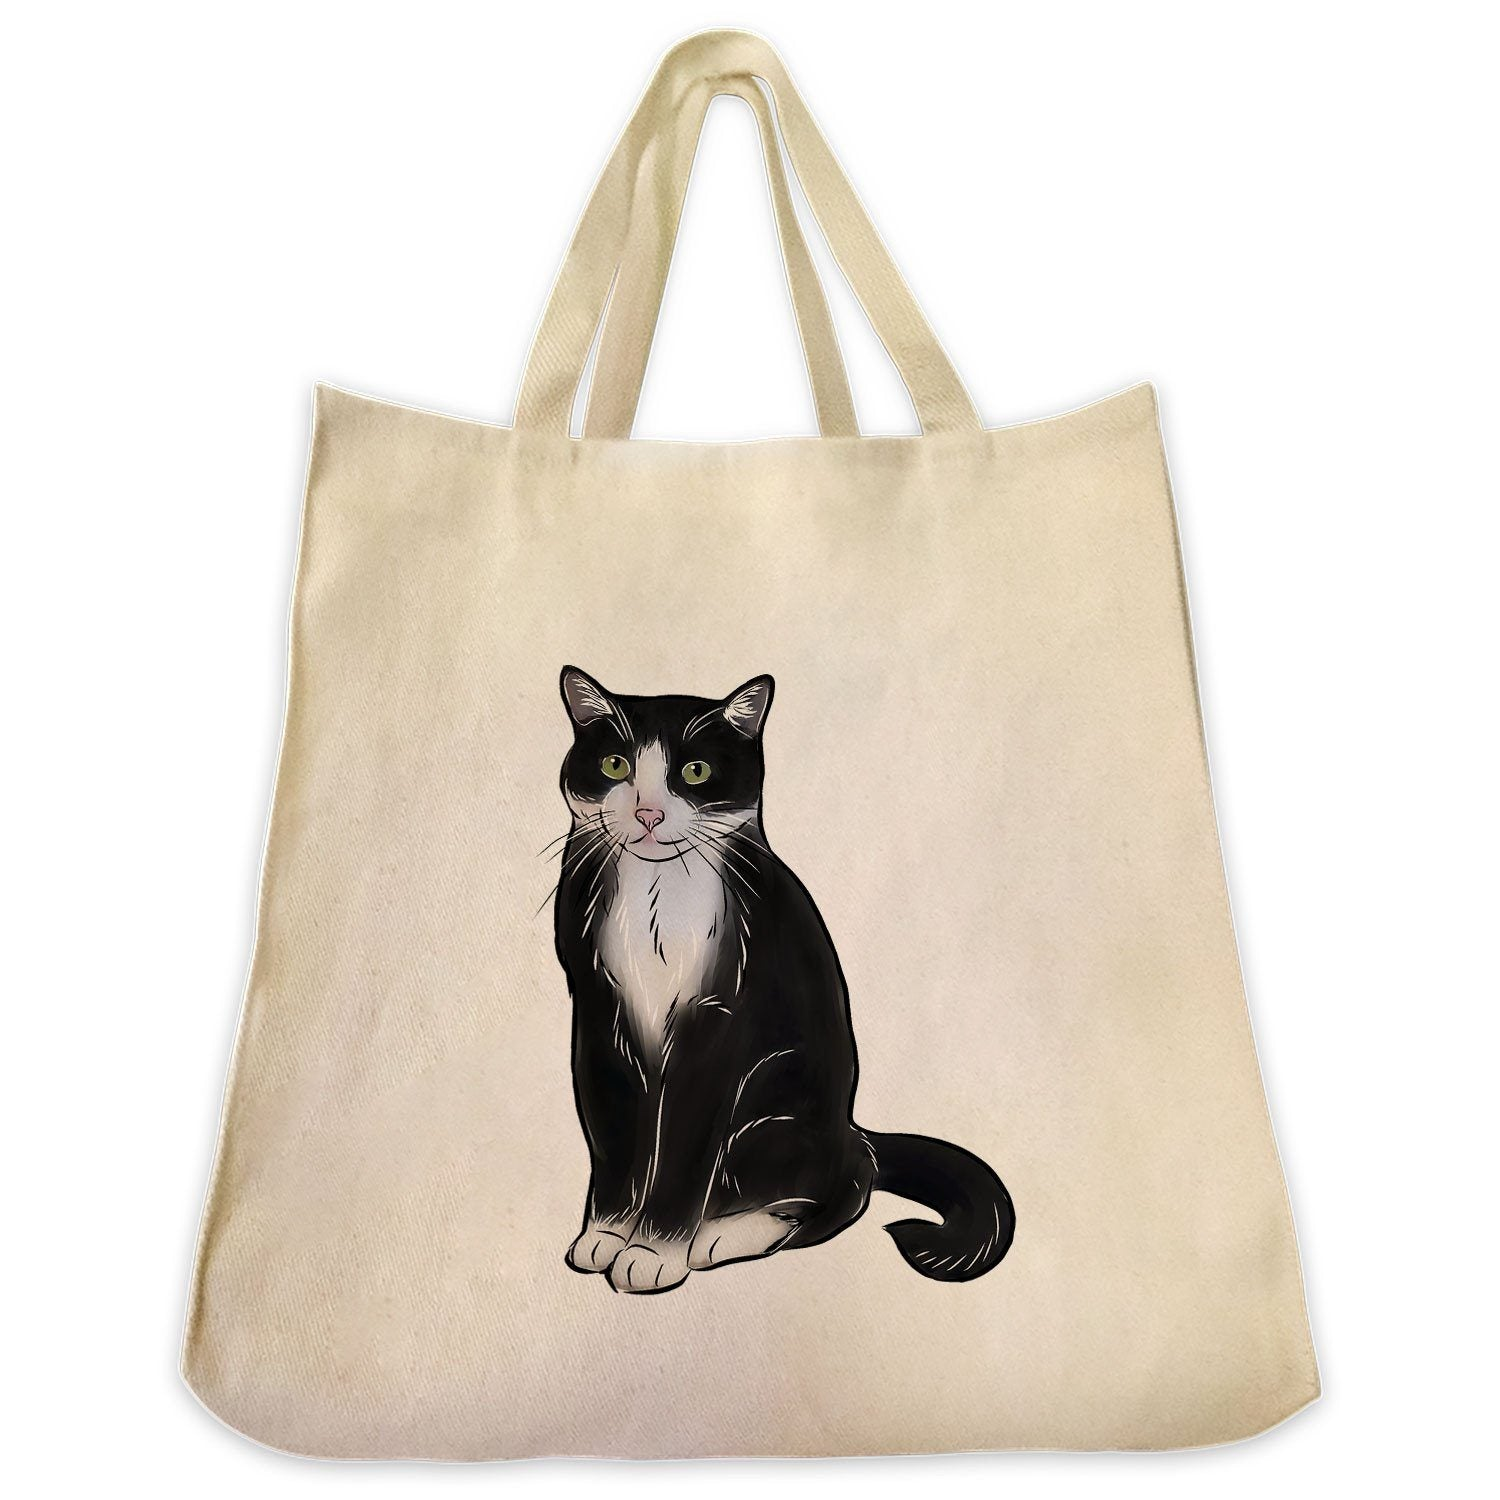 14c8819d36 Re-usable Tote Bag - Tuxedo Cat Full Body Design Extra Large Eco Friendly  Reusable